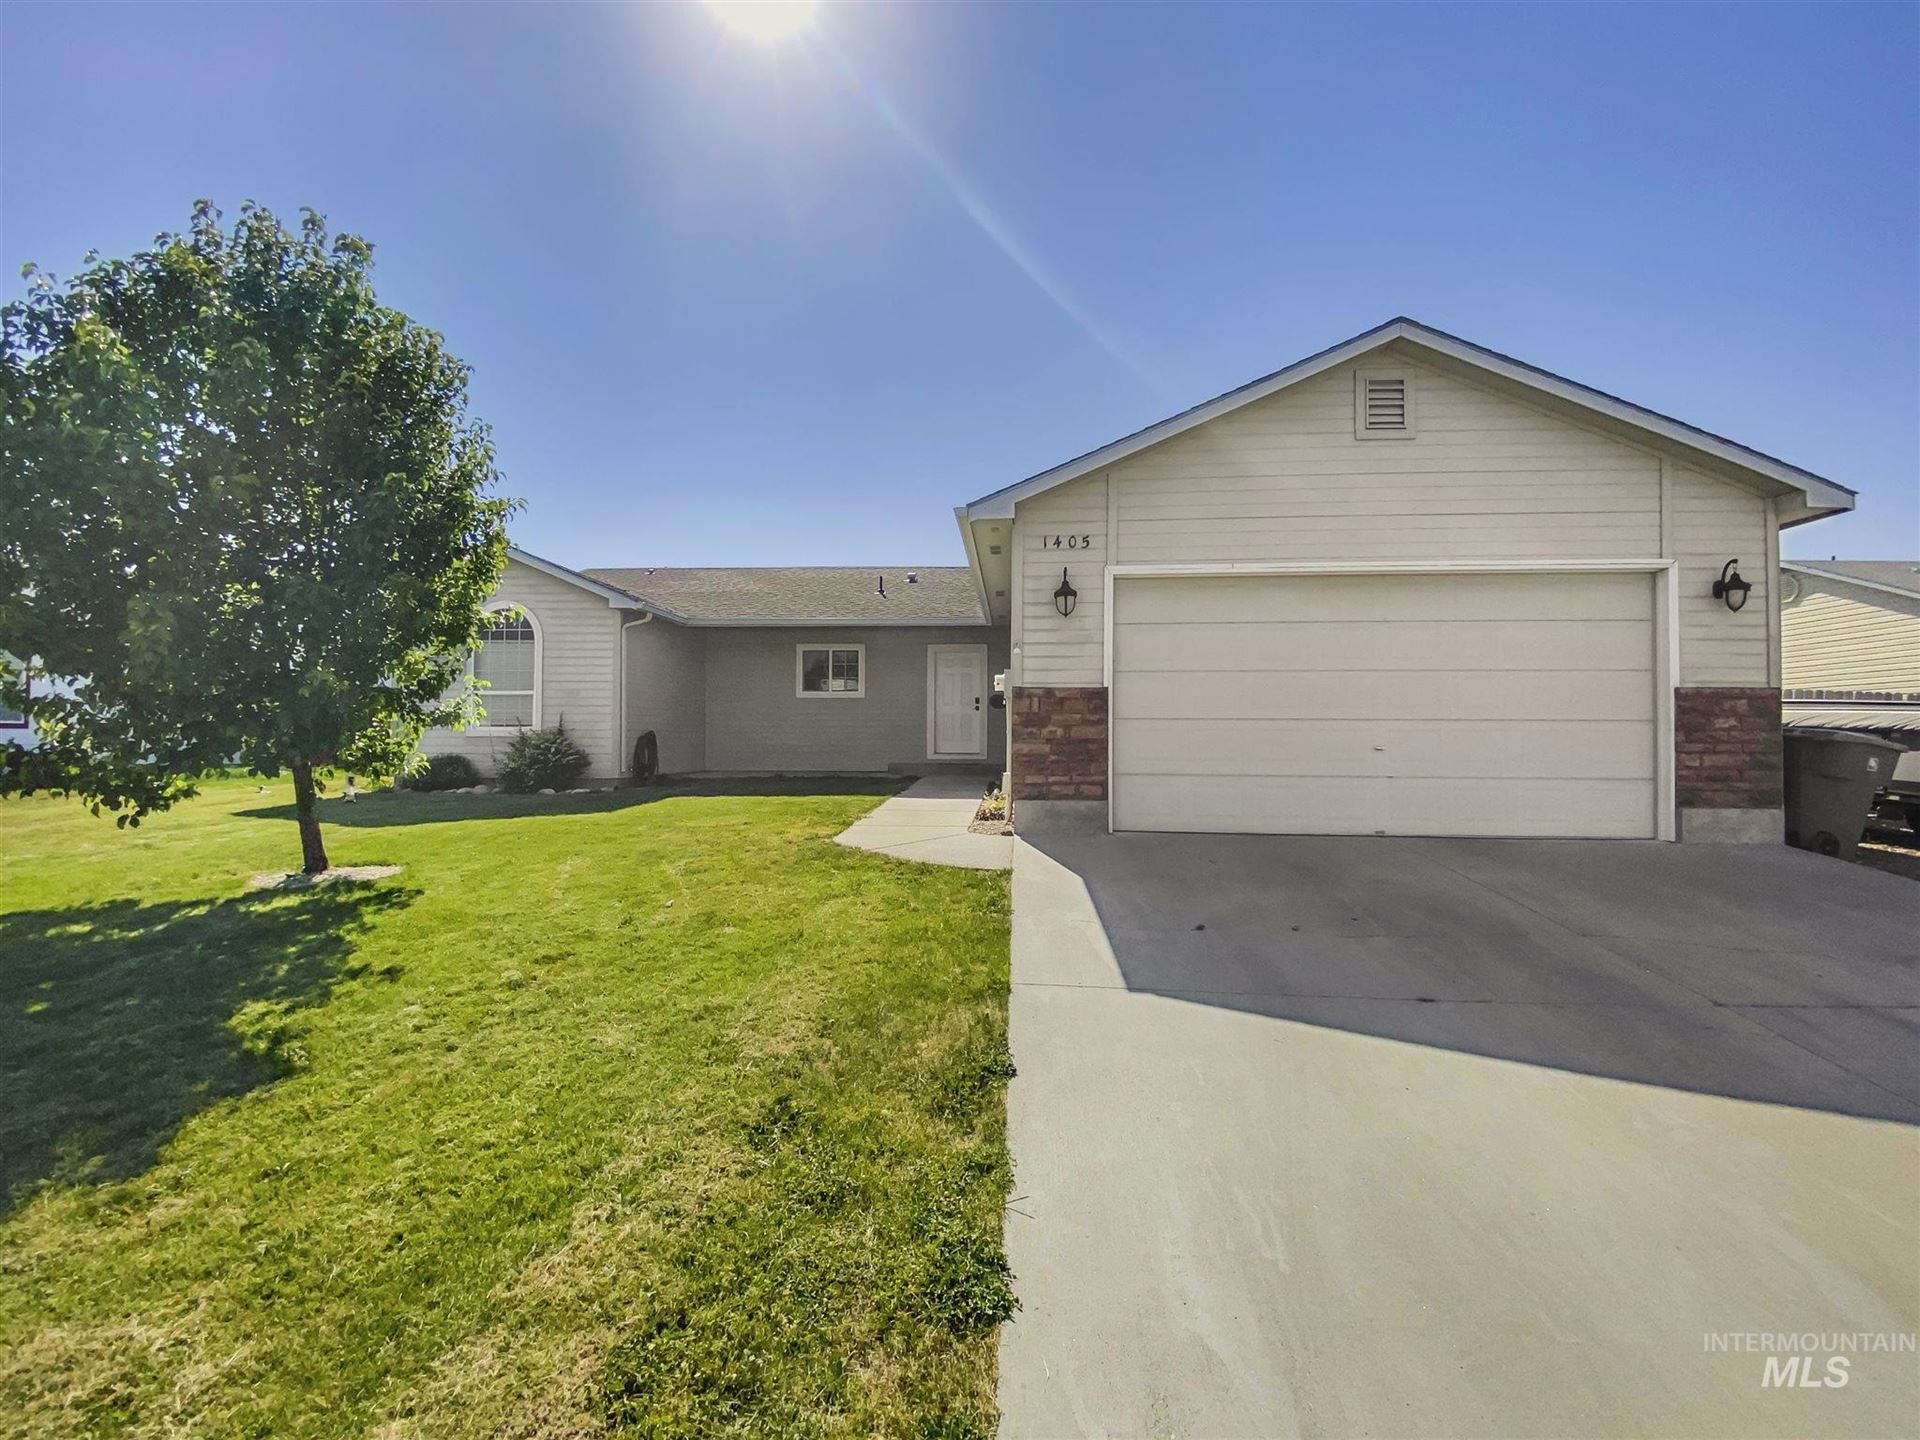 1405 Chelsey Circle, Mountain Home, ID 83647 - MLS#: 98775847